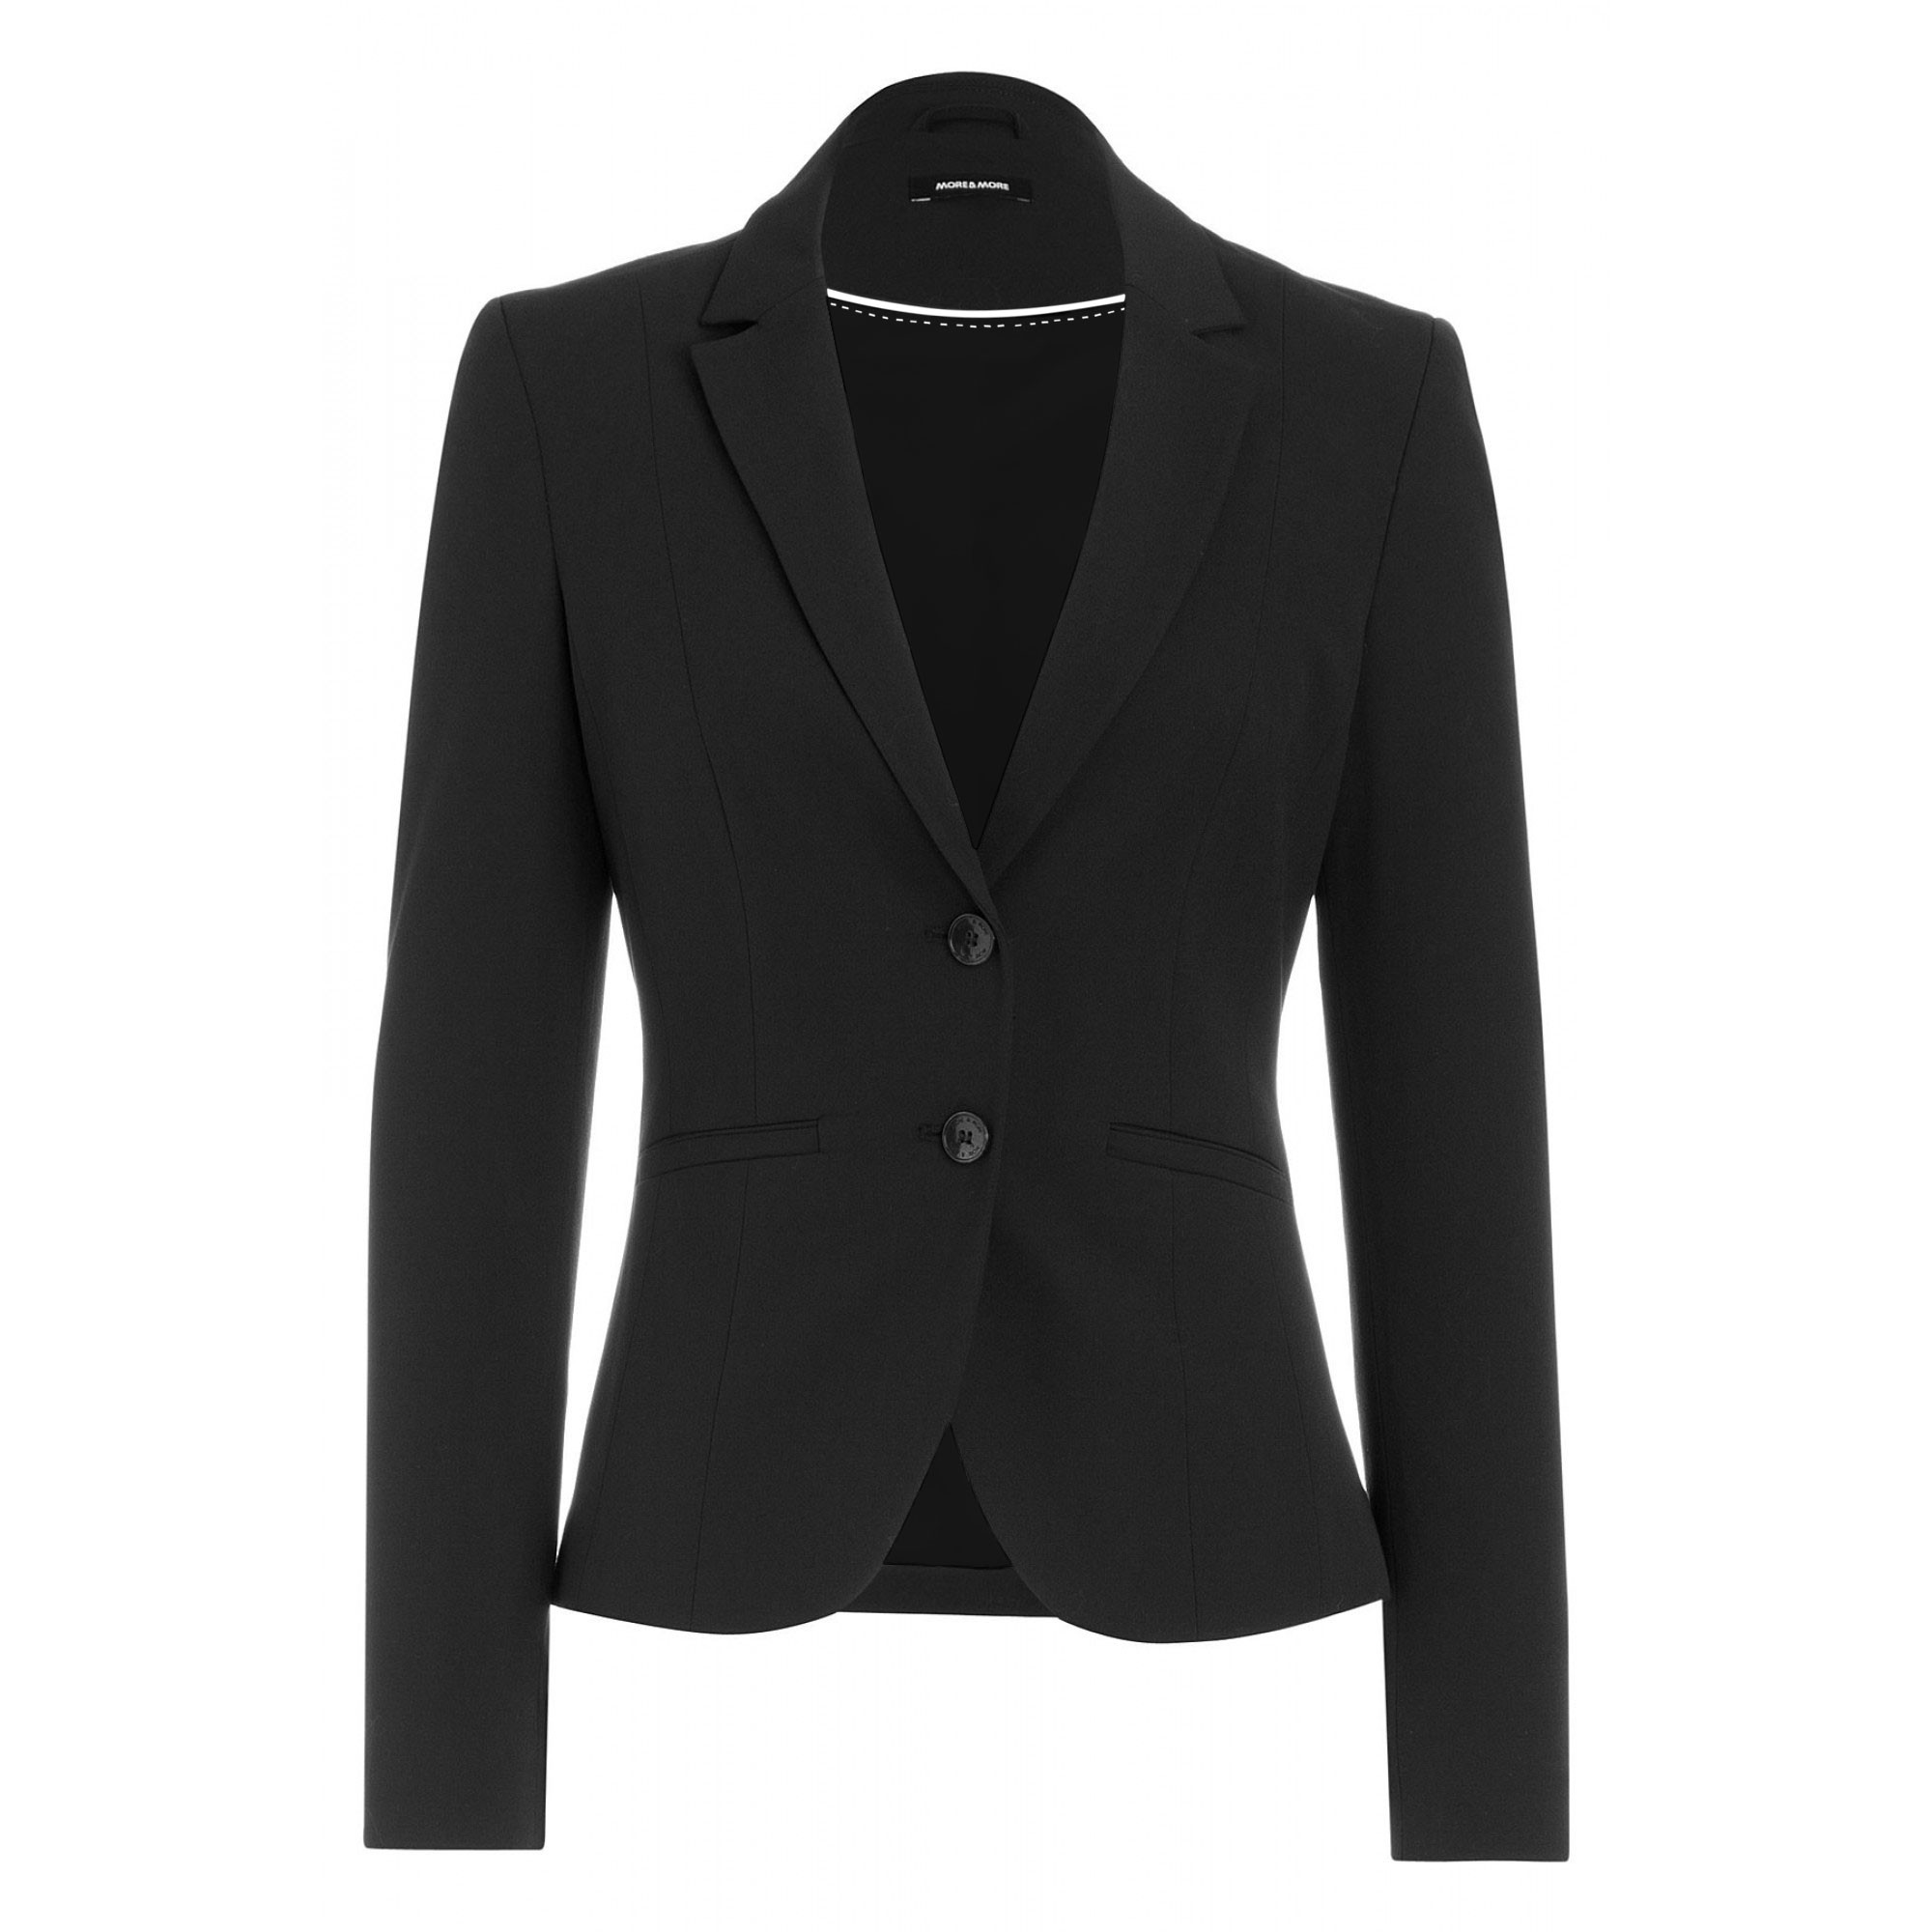 Businessblazer, schwarz 88886509-0790 1